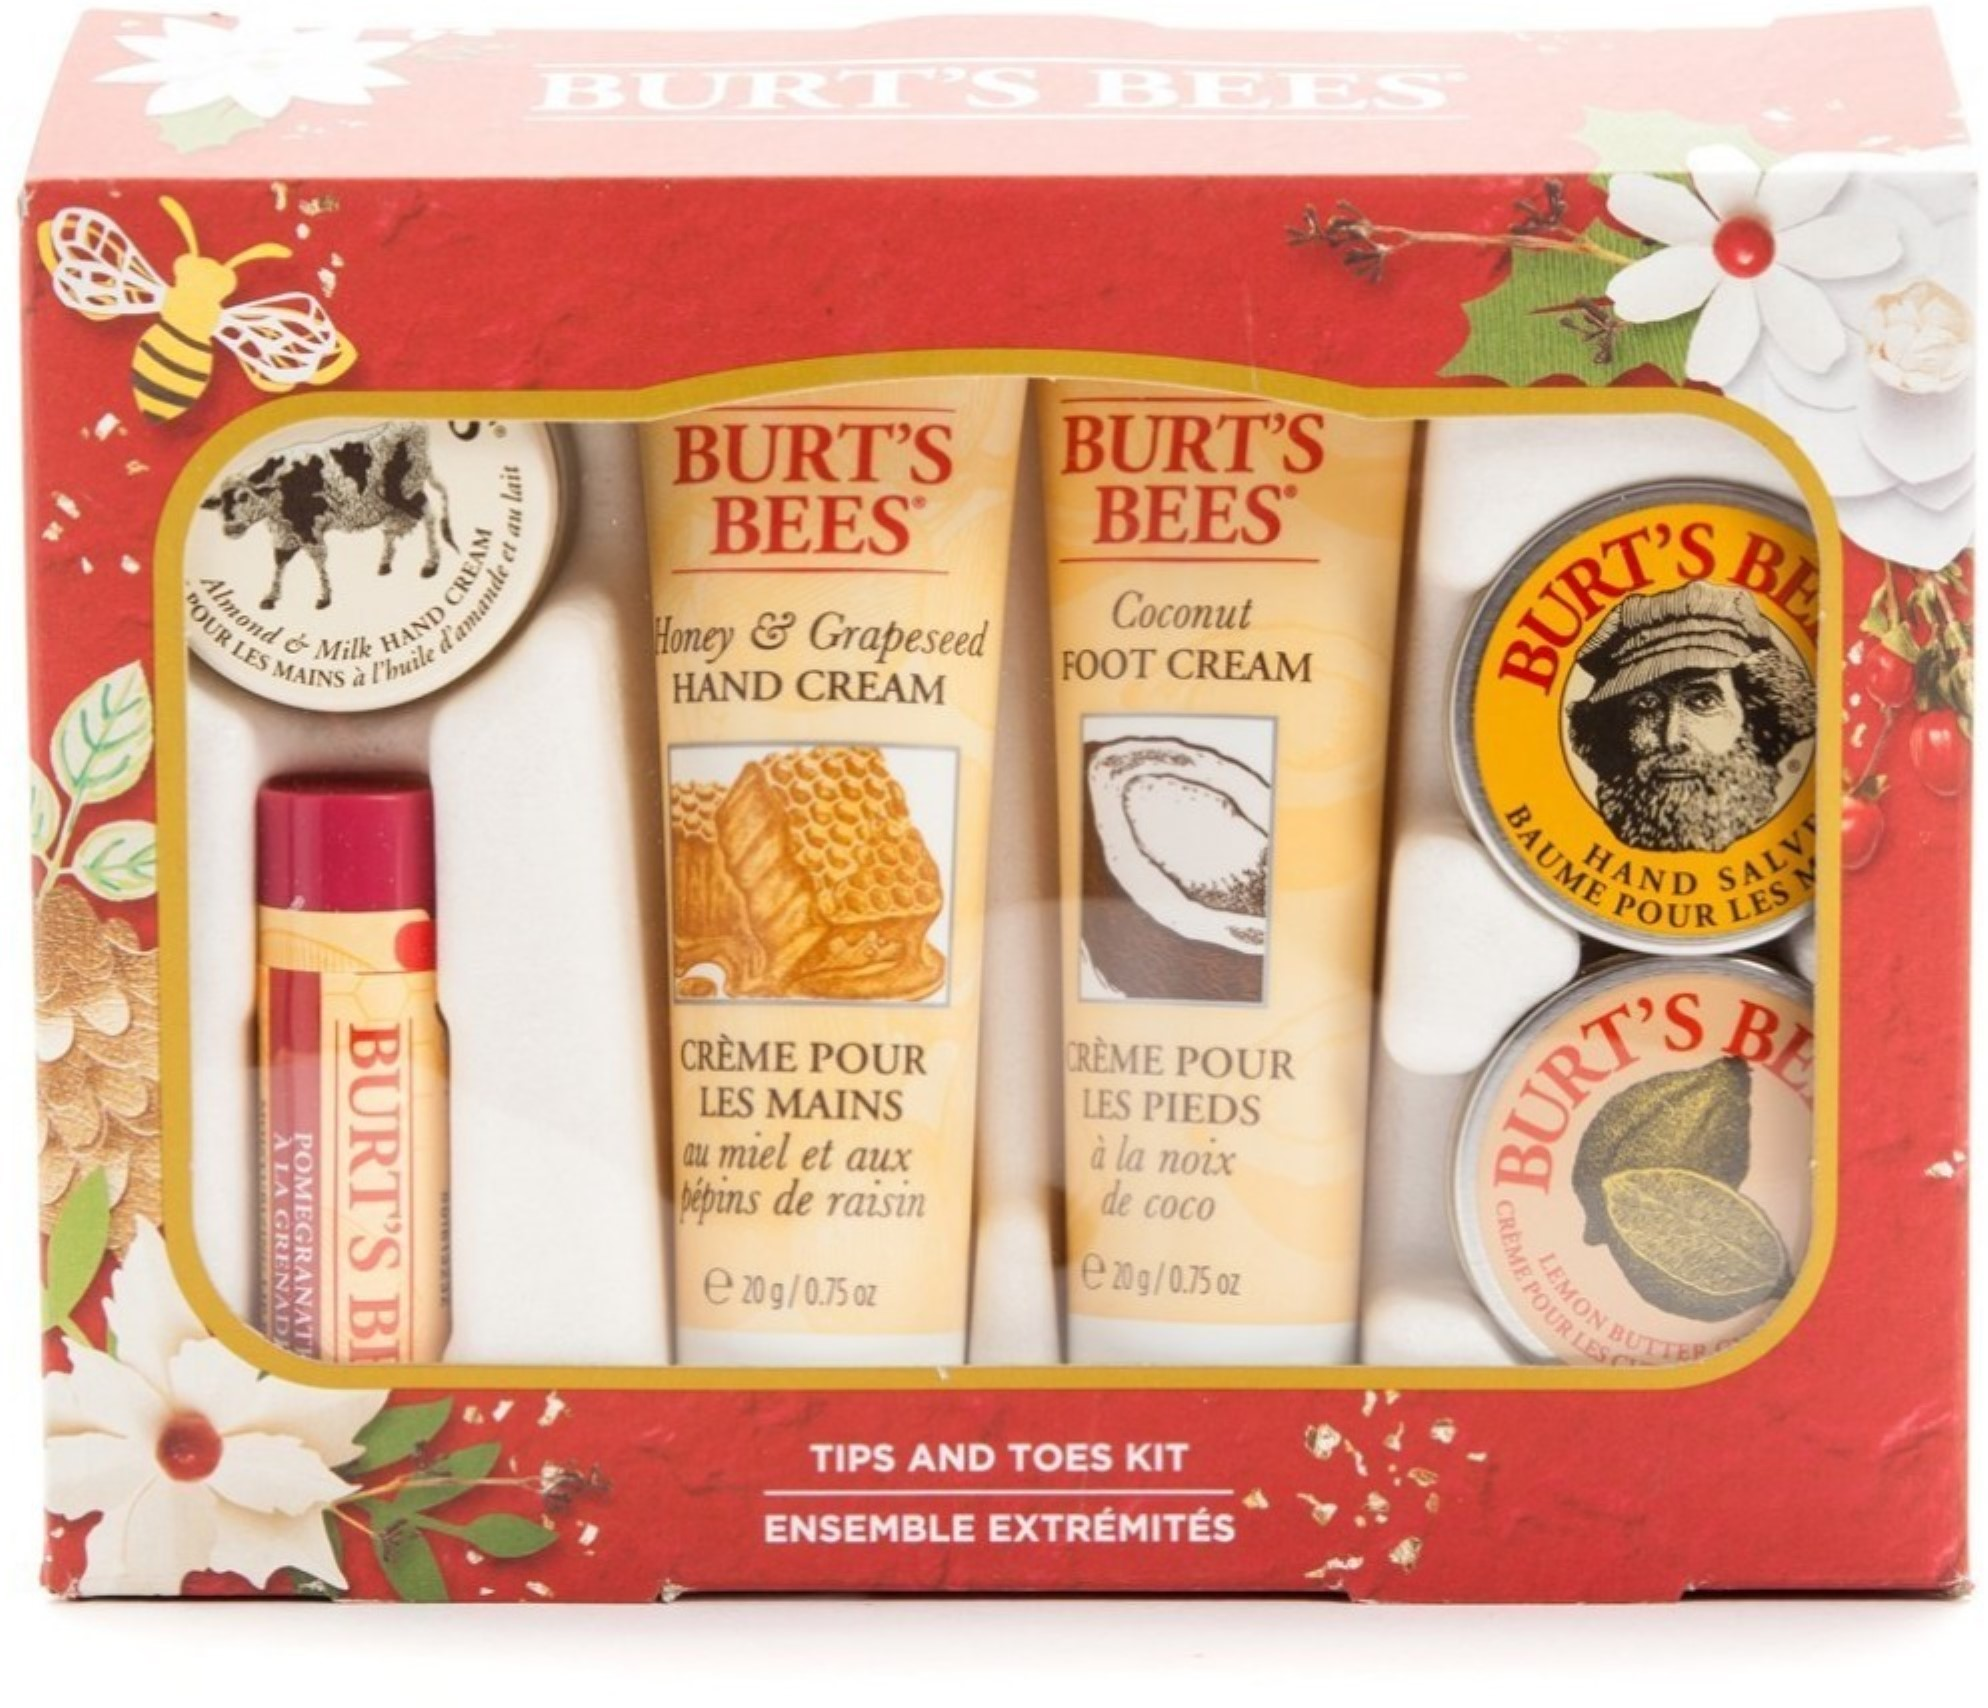 Burts Bees Tips And Toes Kit 1 ea (Pack of 3) Helena Rubinstein - Collagenist V-Lift Tightening Replumping Cream (Dry Skin) -50ml/1.72oz